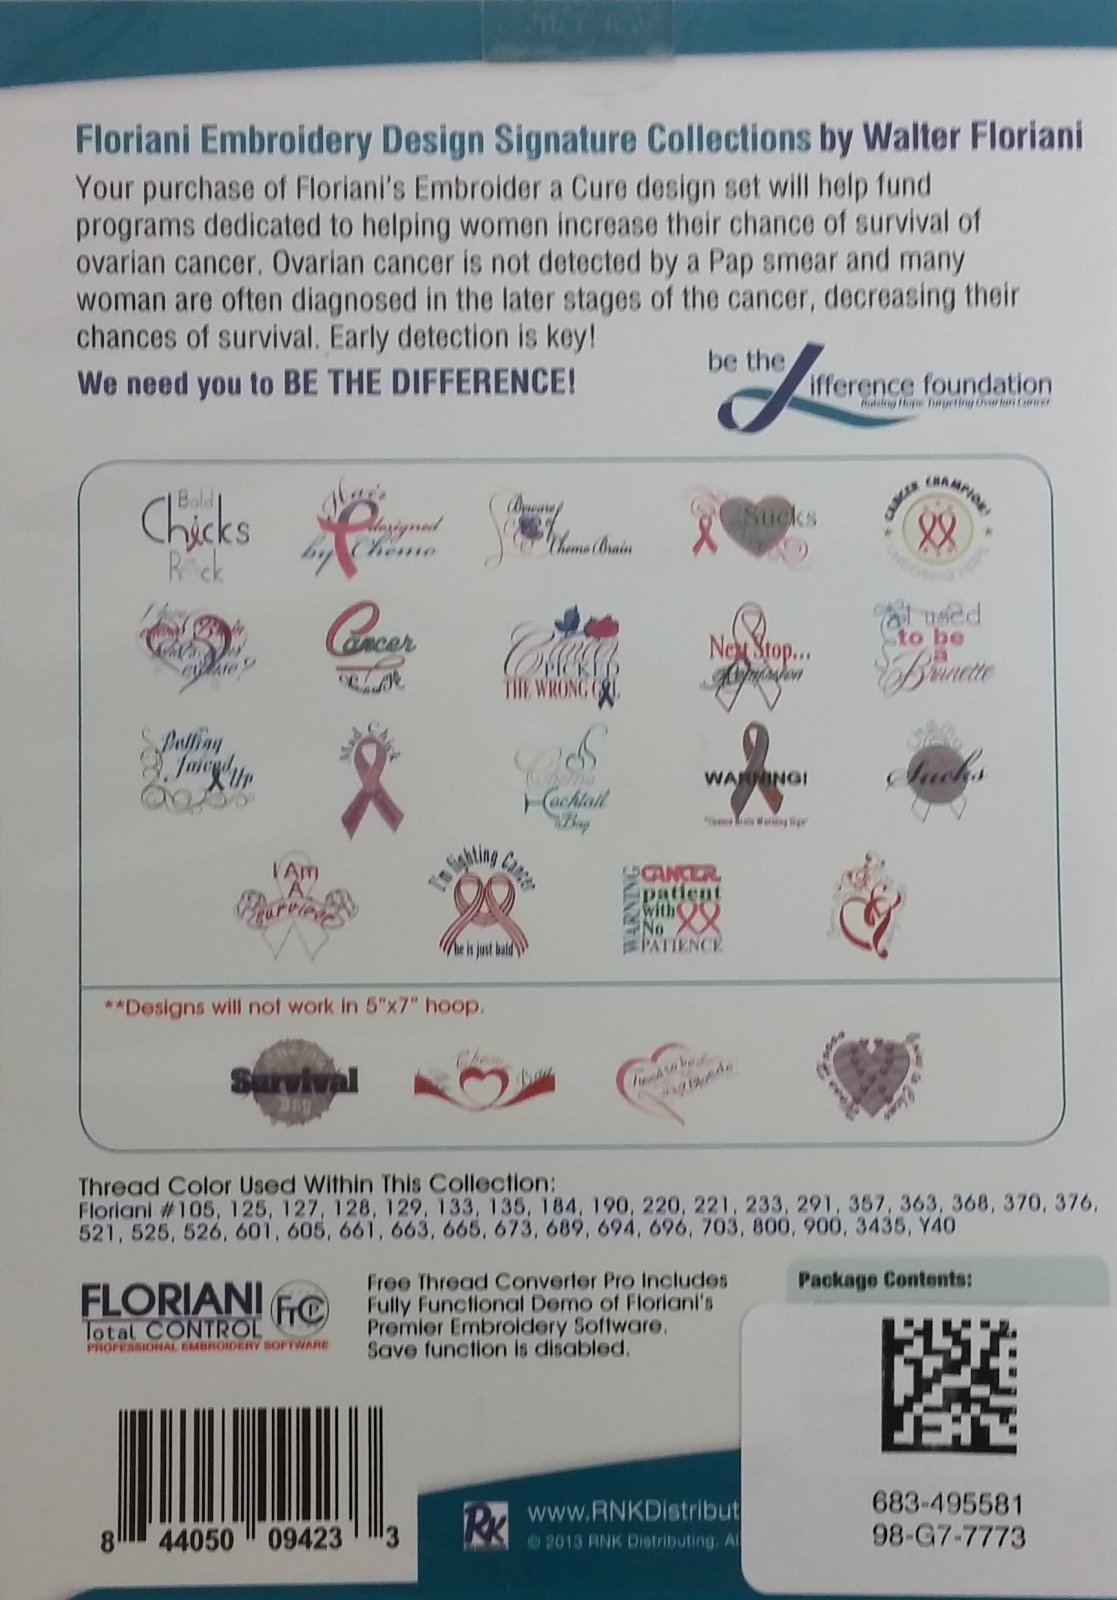 FLORIANI SIGNATURE EMBROIDER A CURE